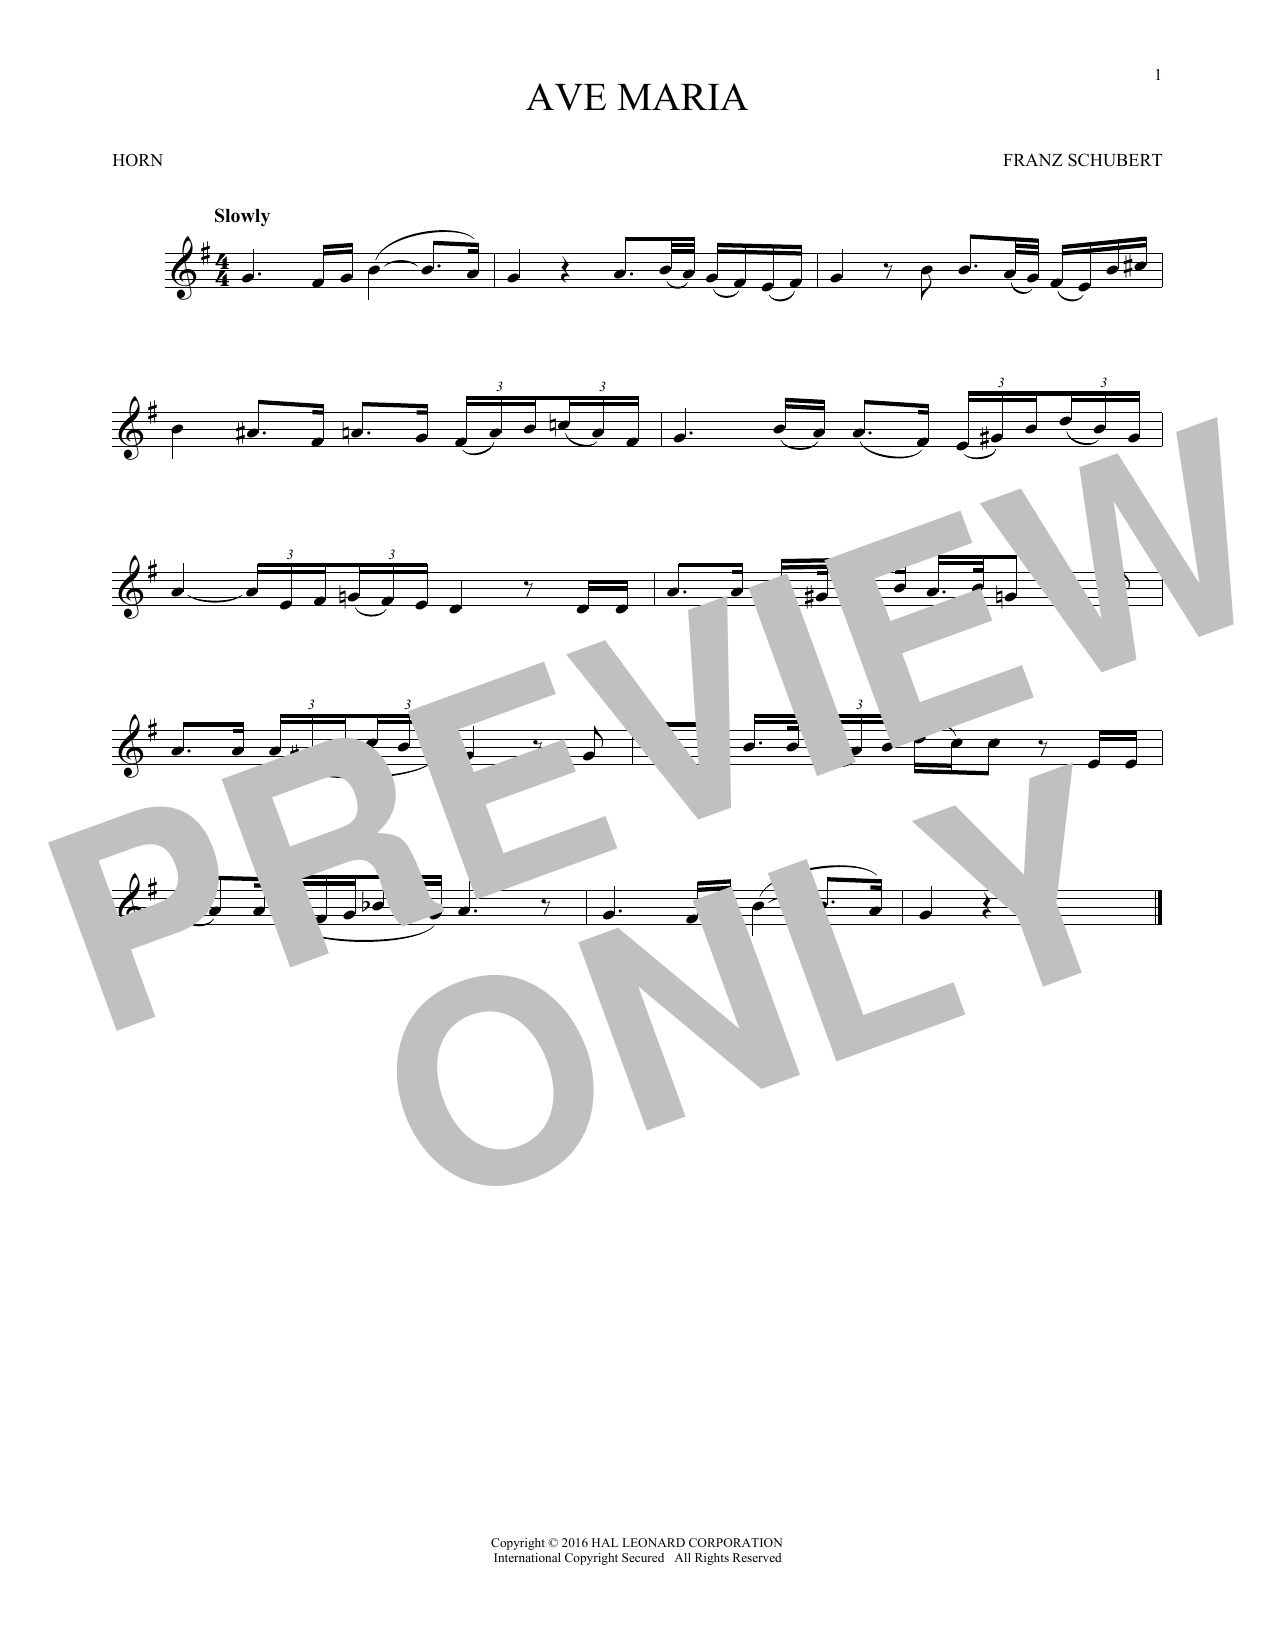 Ave Maria, Op. 52, No. 6 (French Horn Solo)